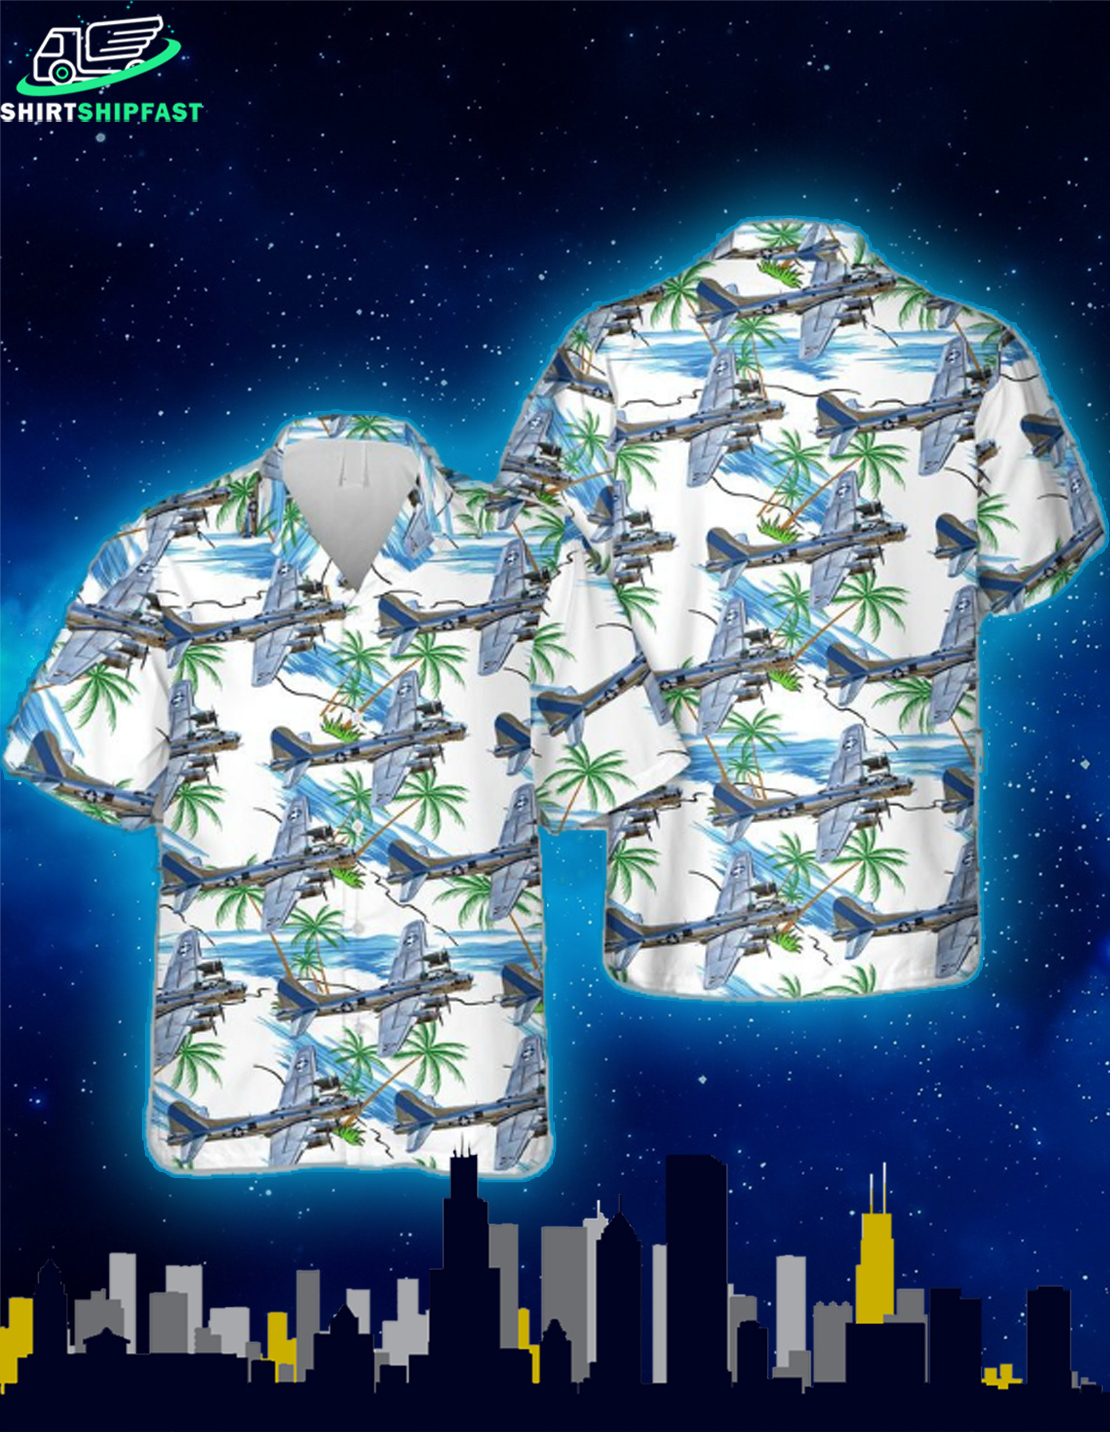 B-17 Flying Fortress of the 53rd WRS Hawaiian Shirt - Picture 1